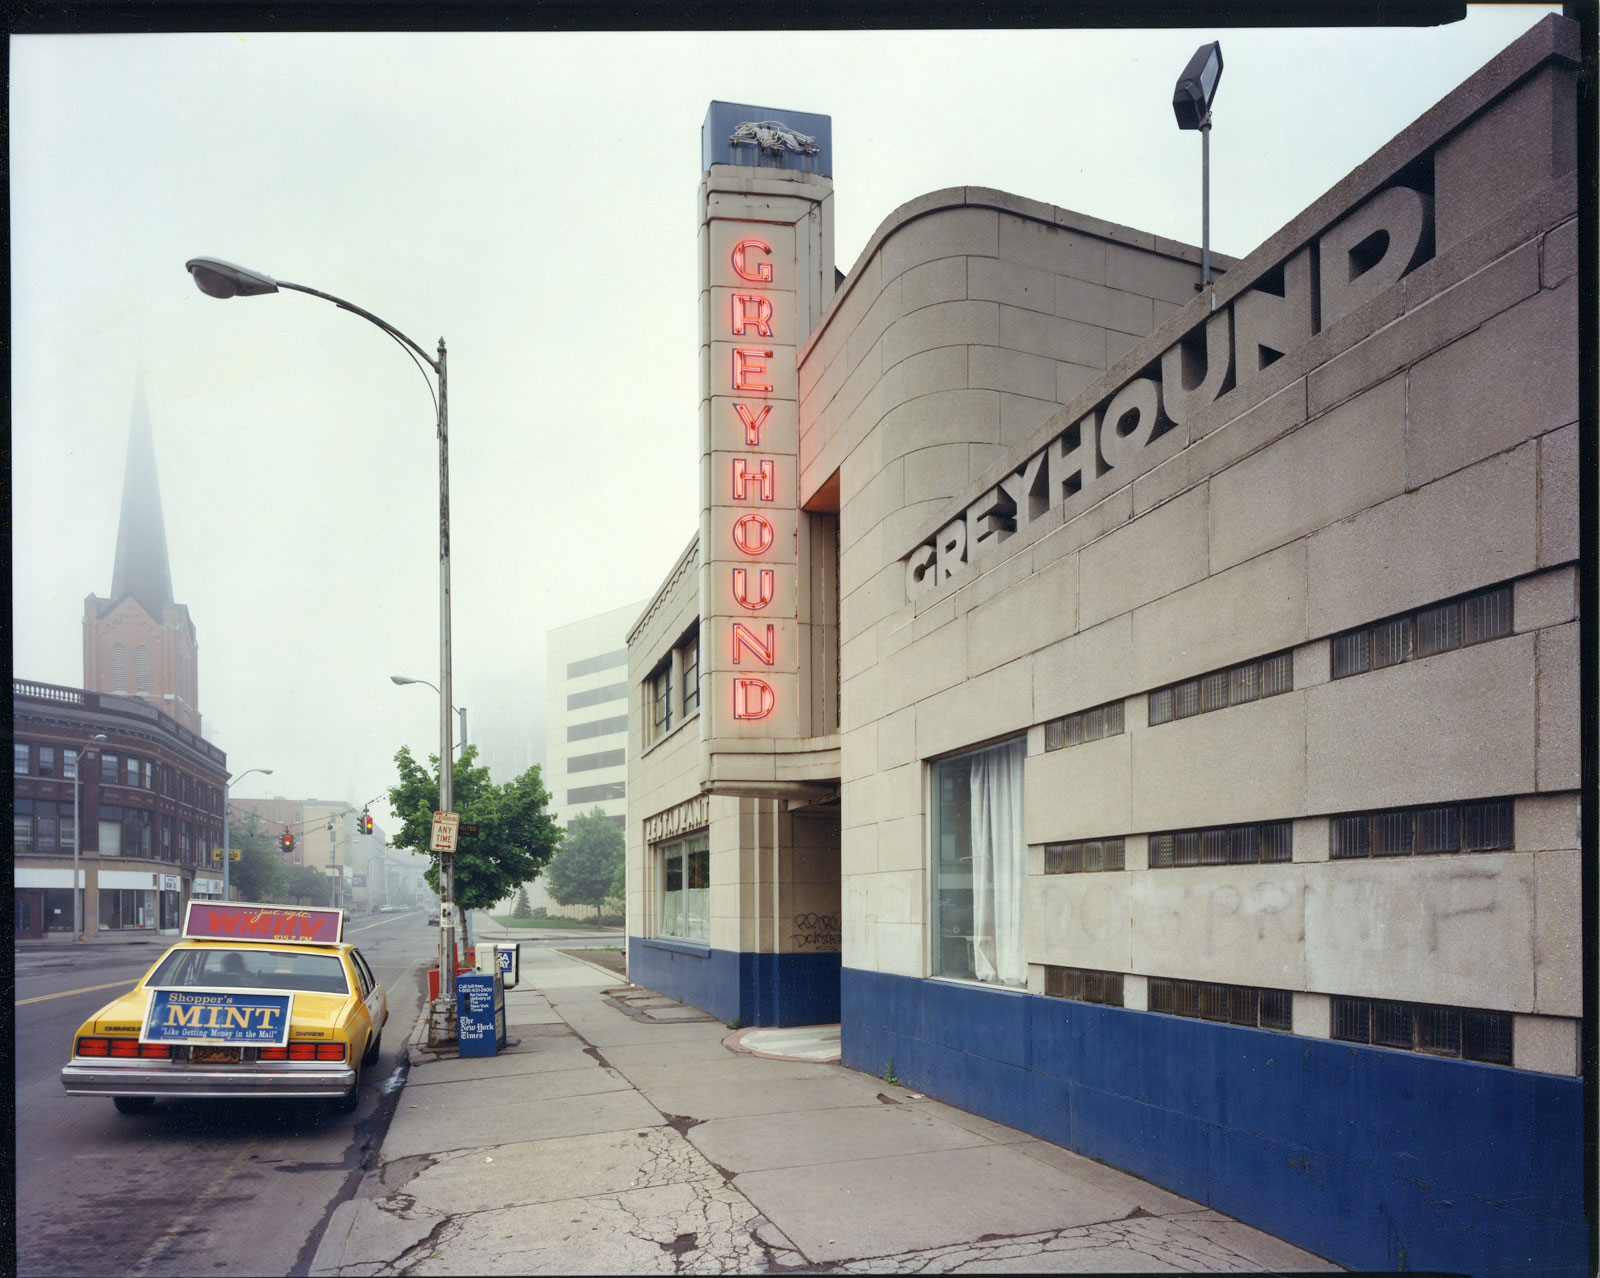 Greyhound Bus Station, Binghamton, NY, 1986